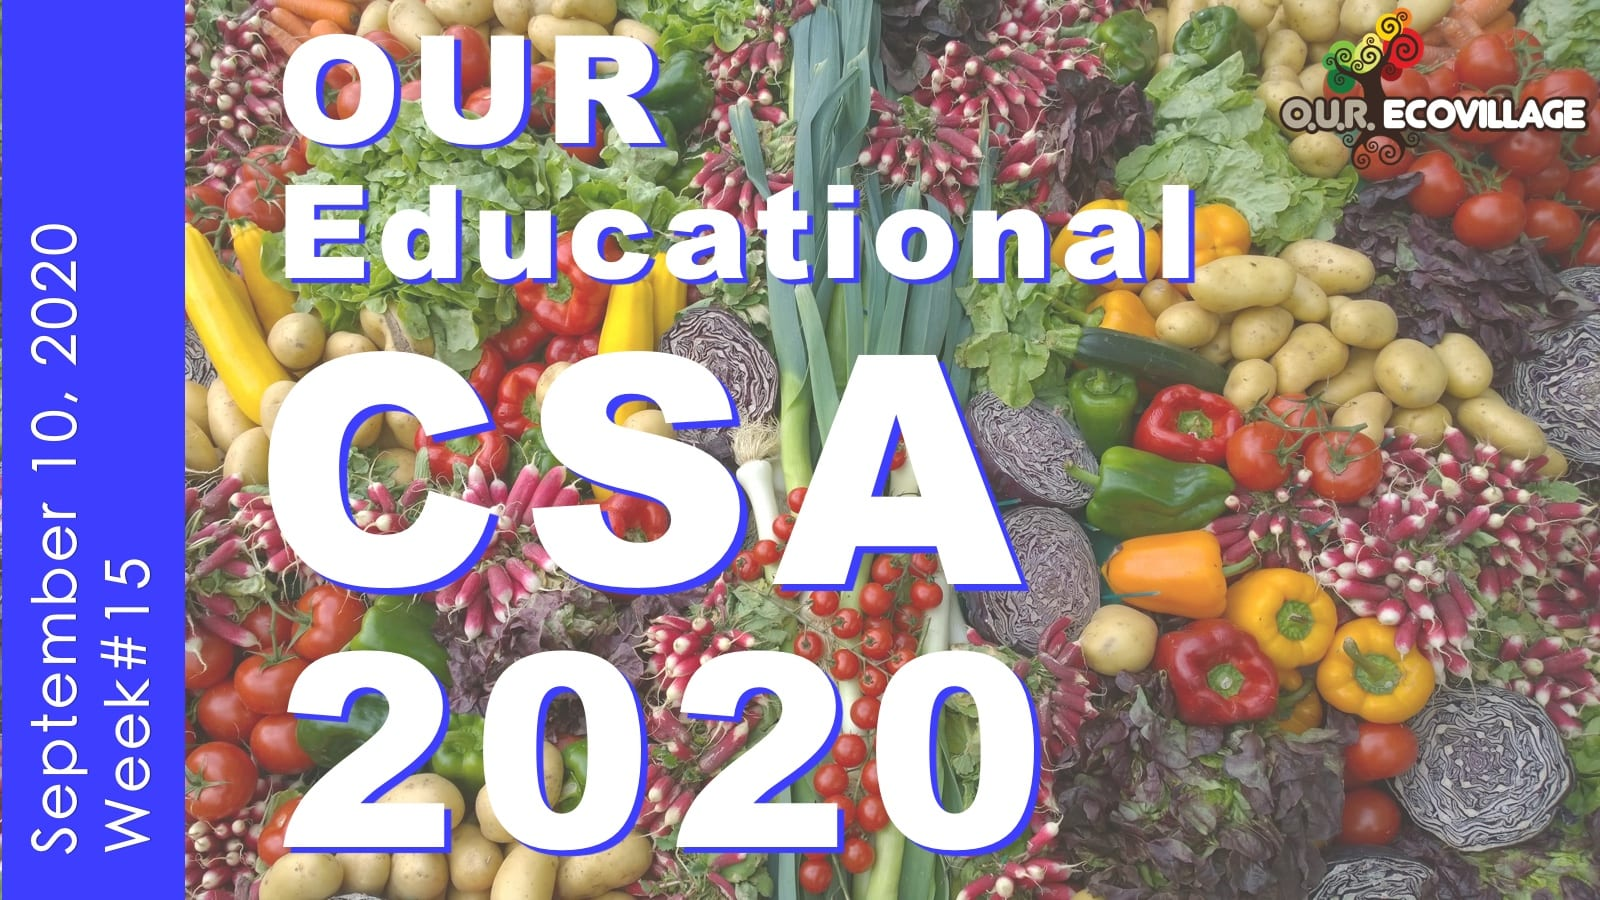 OUR Educational CSA Week #15